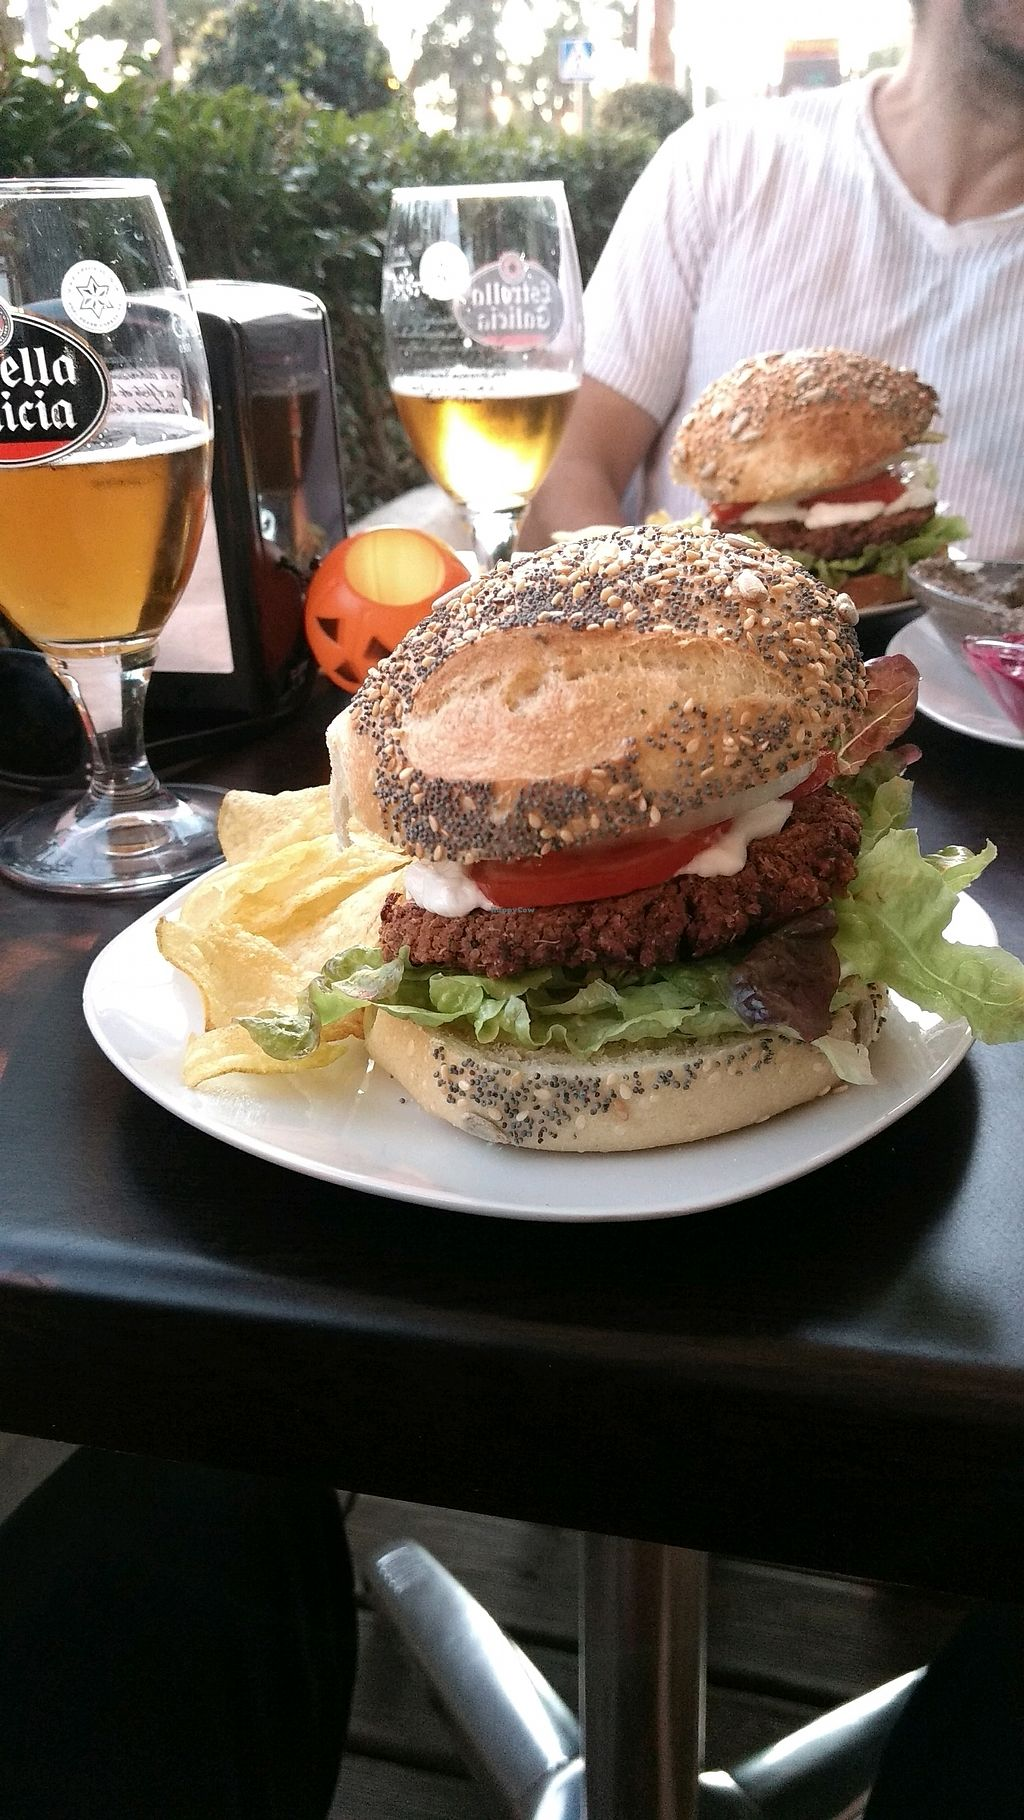 """Photo of Petit Vegan  by <a href=""""/members/profile/NilsSund%C3%A9n"""">NilsSundén</a> <br/>The burger <br/> October 27, 2017  - <a href='/contact/abuse/image/95126/319295'>Report</a>"""